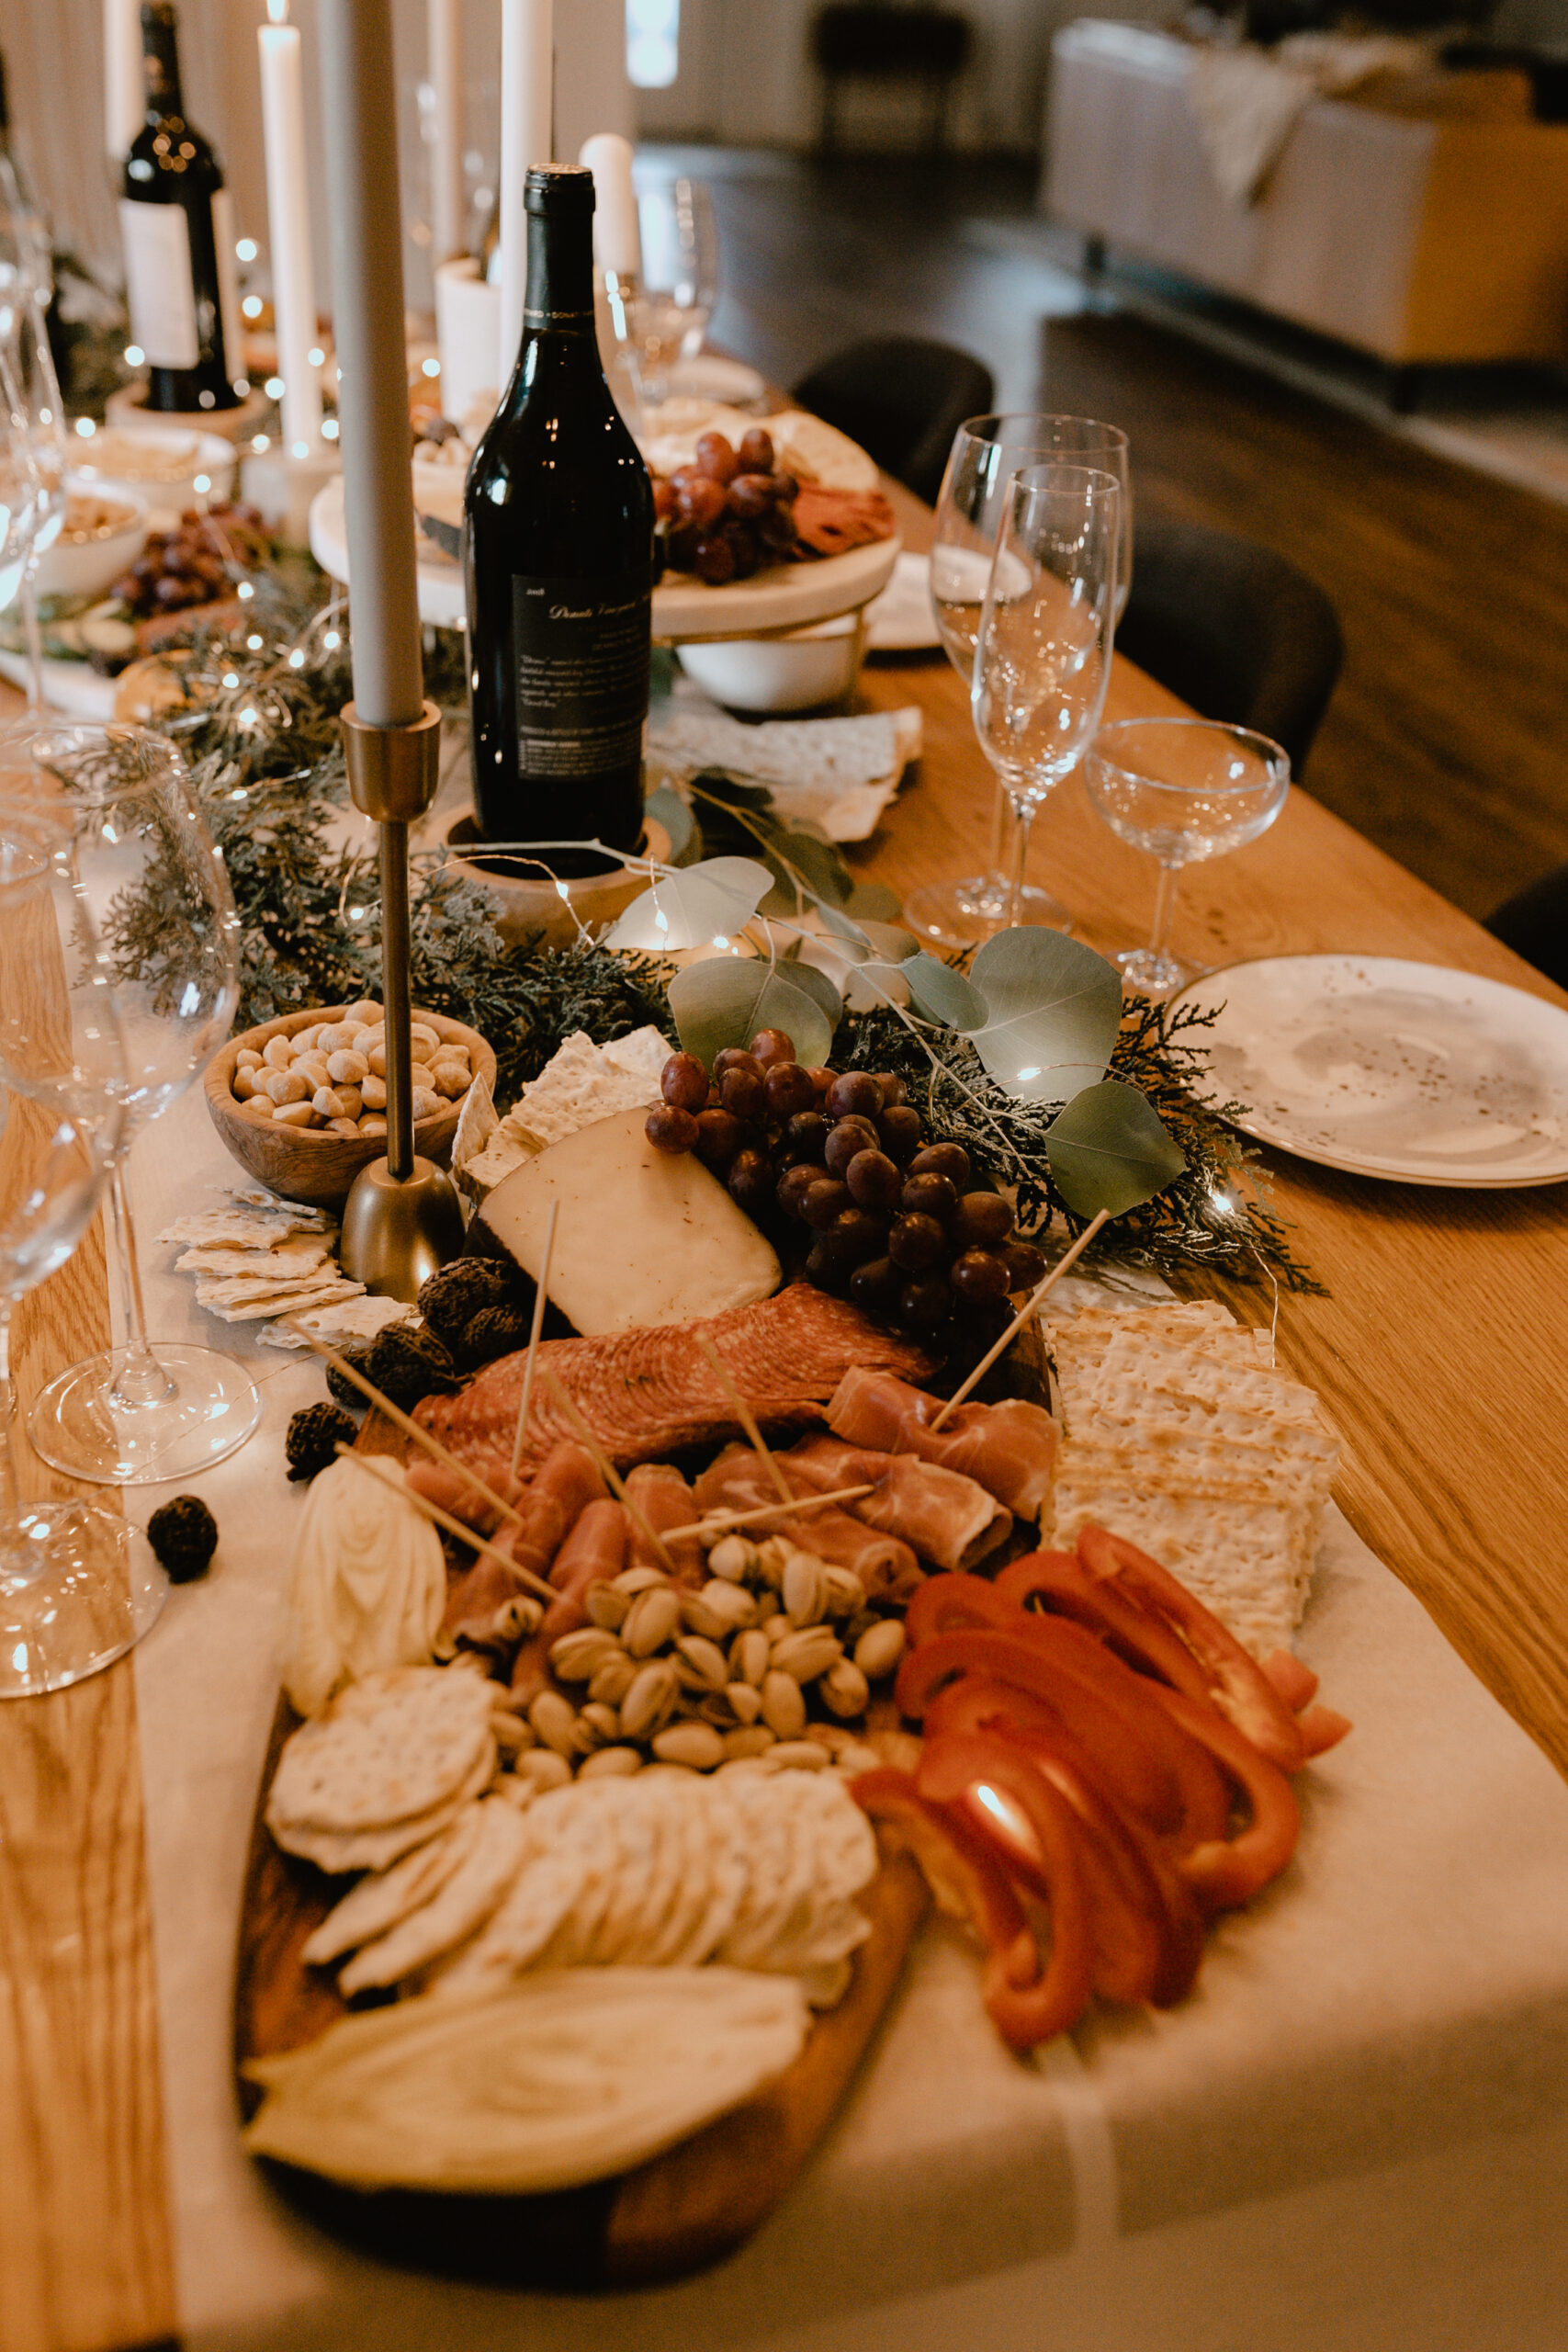 a step by stop guide for how to create this spread for your guests this holiday season! #thelovedesignedlife #holidayhome #charcuterieboard